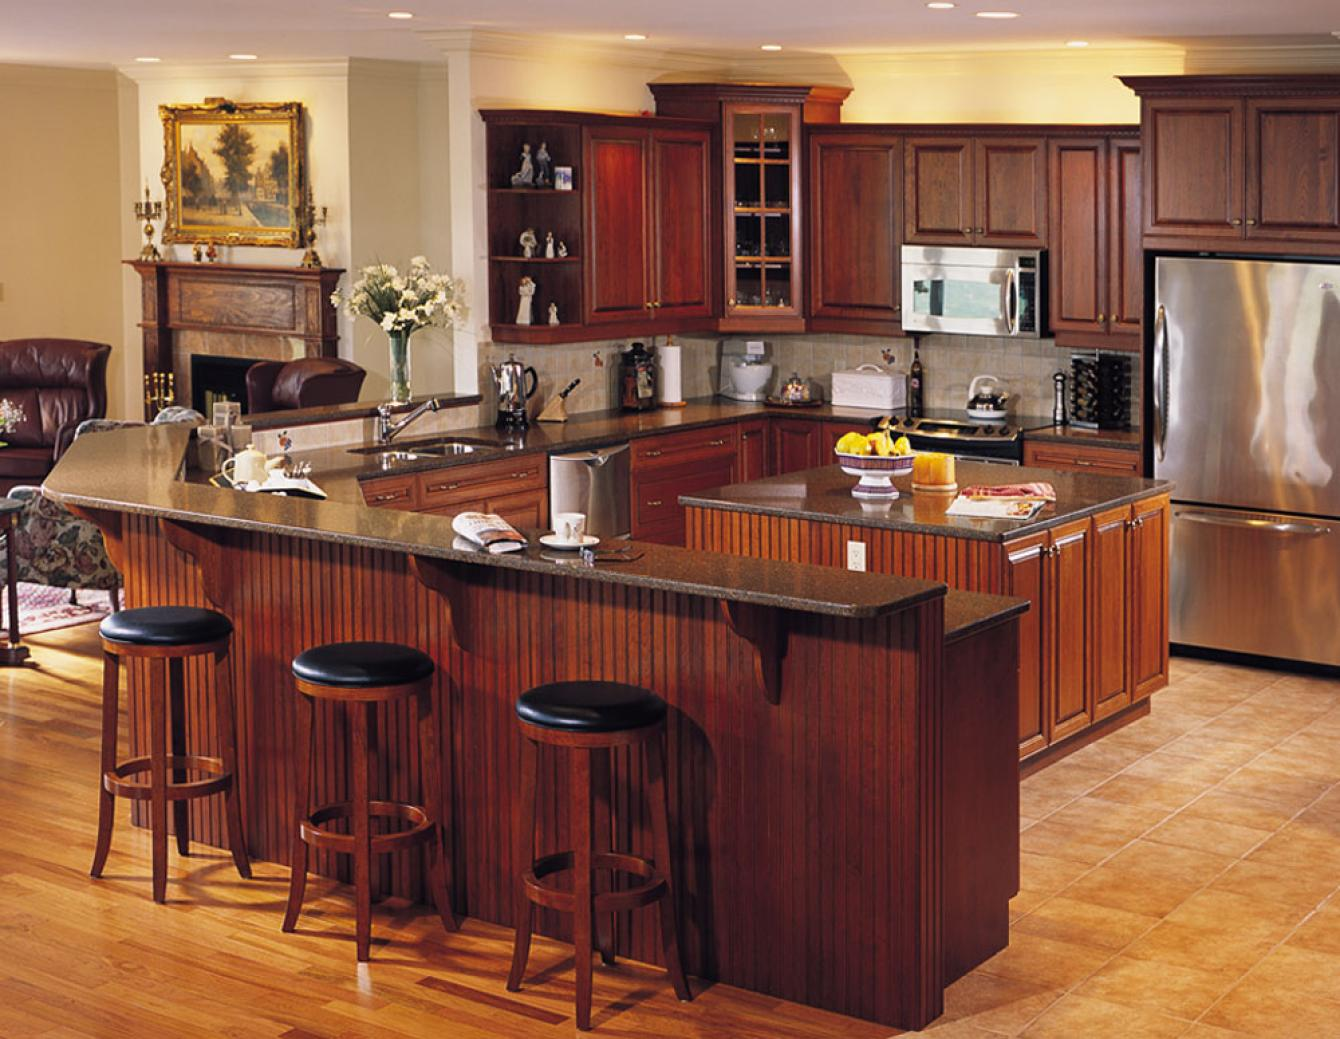 Kitchen design gallery triangle kitchen for Small kitchen design ideas photo gallery